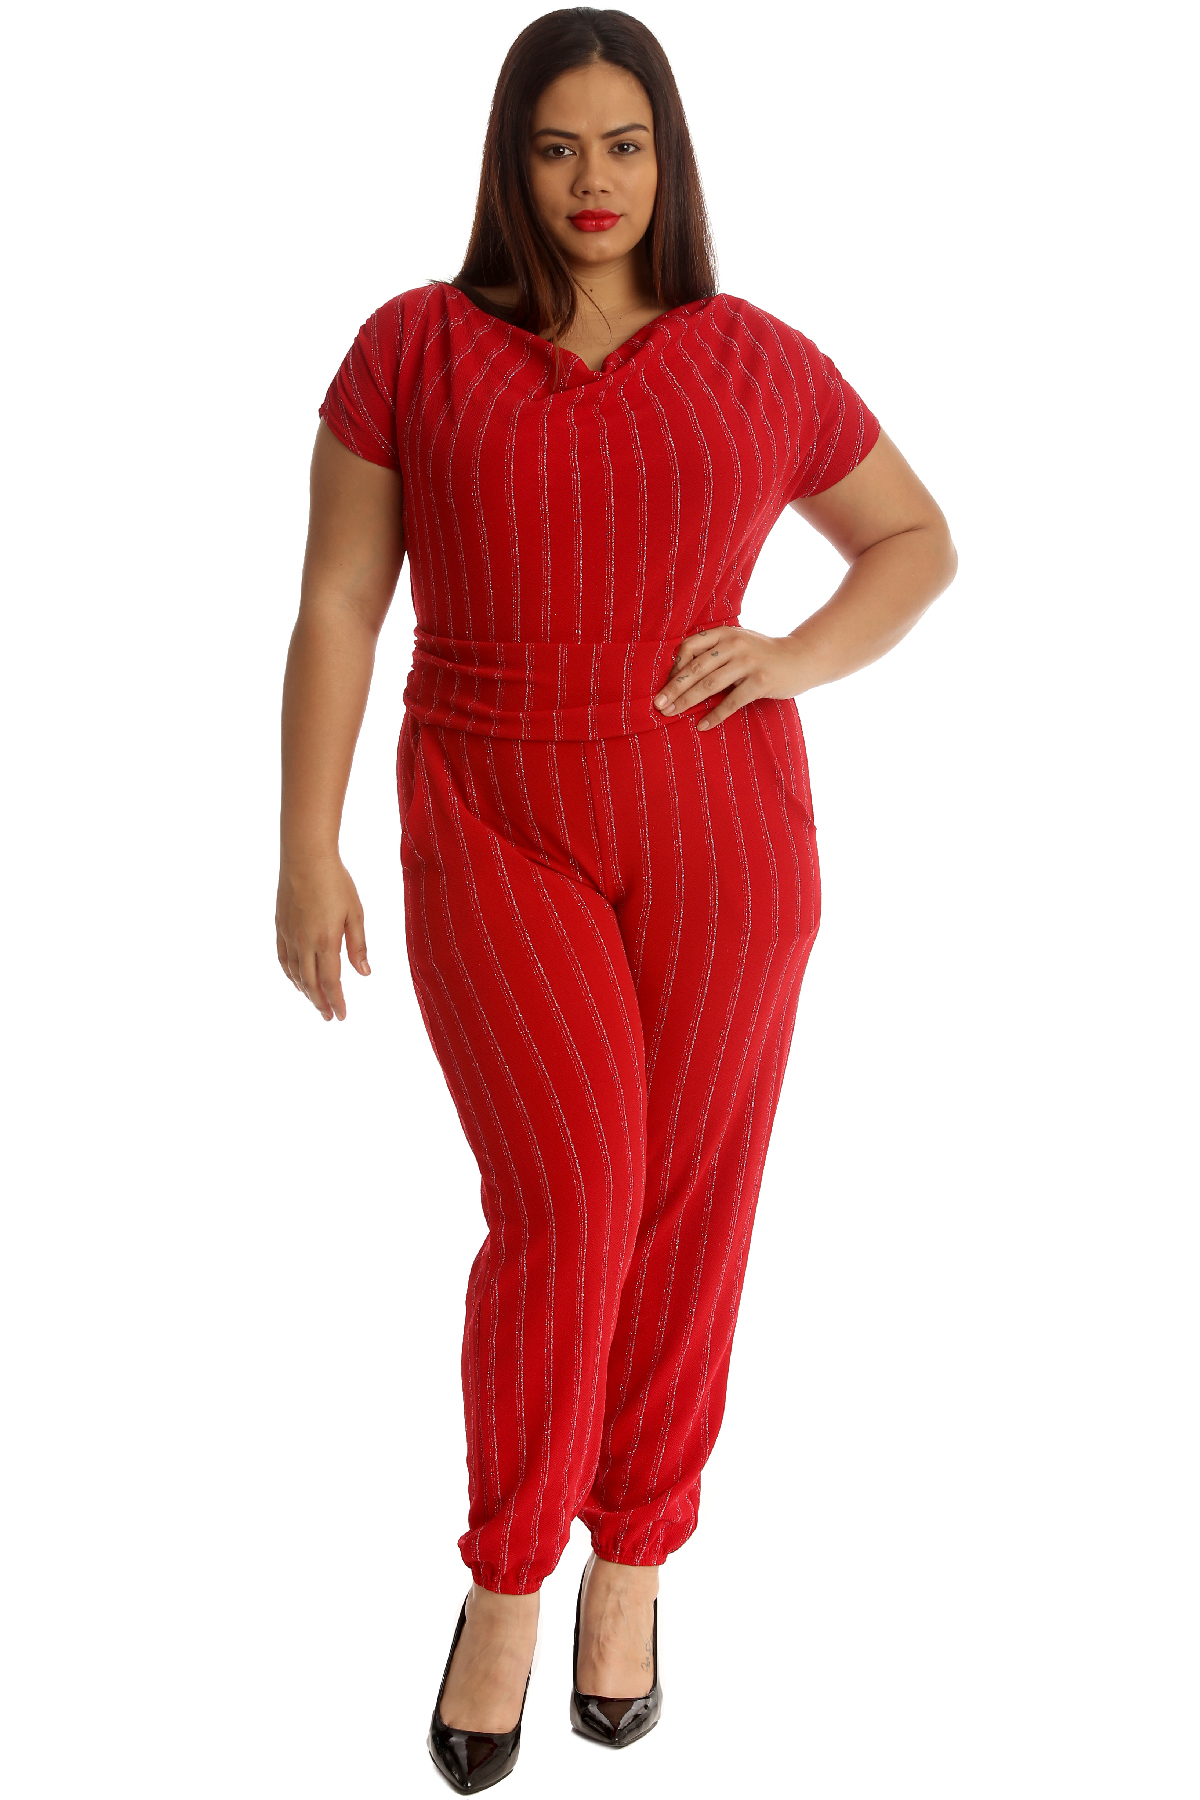 66bdac1ef6b New Ladies Jumpsuit Plus Size Womens Foil Stripe All in One Cowl ...